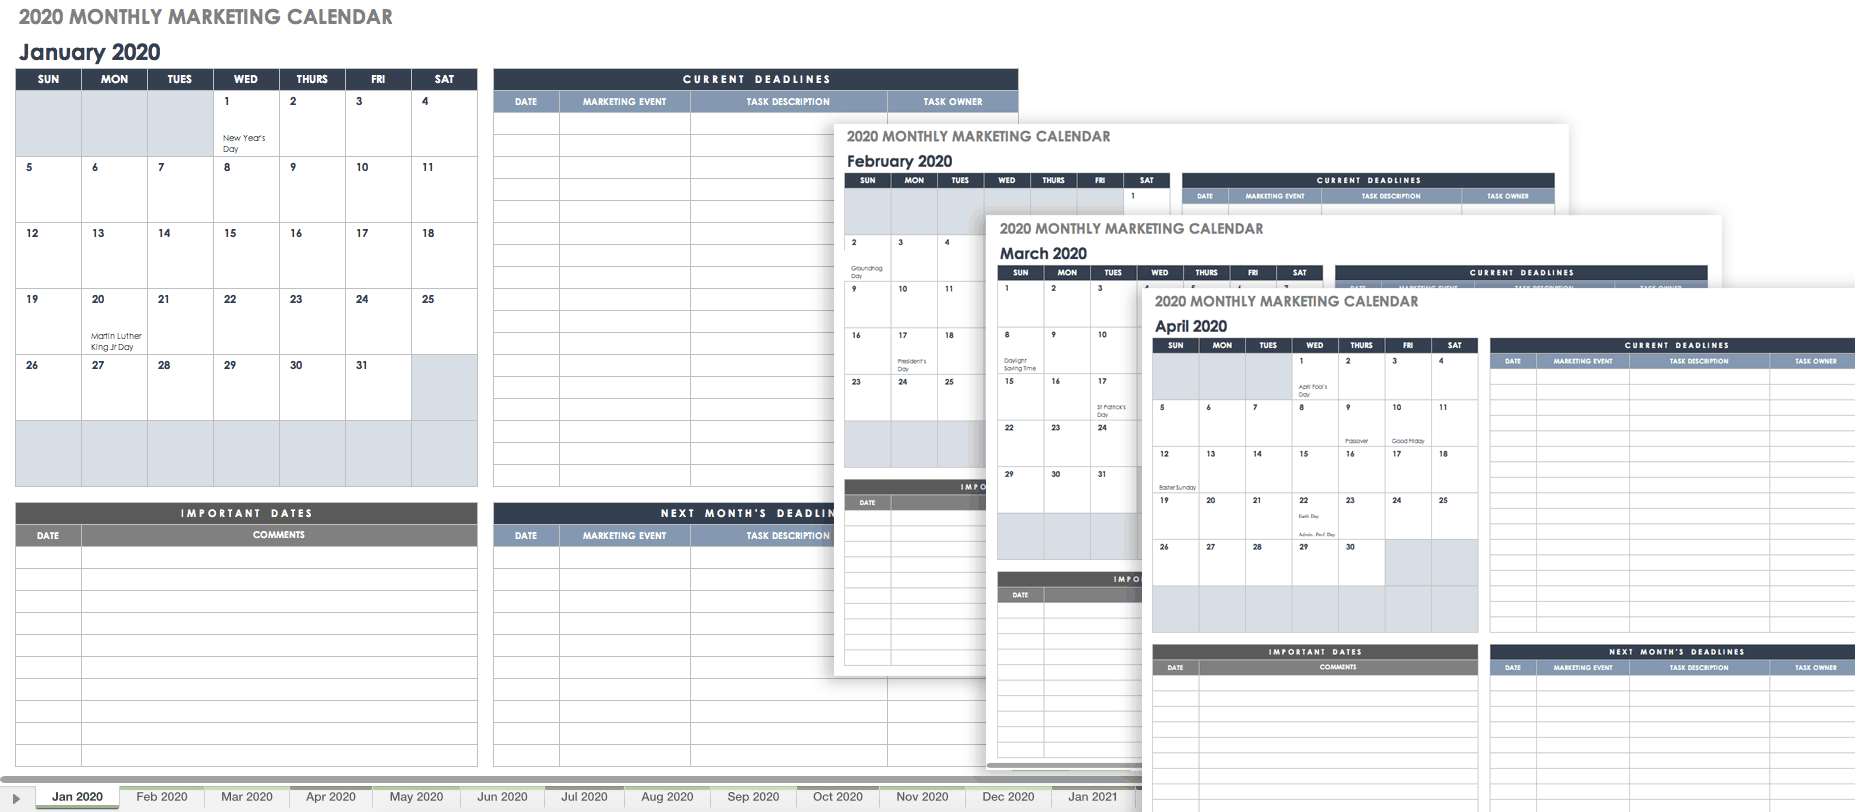 Calendario In Excel 2020.9 Free Marketing Calendar Templates For Excel Smartsheet